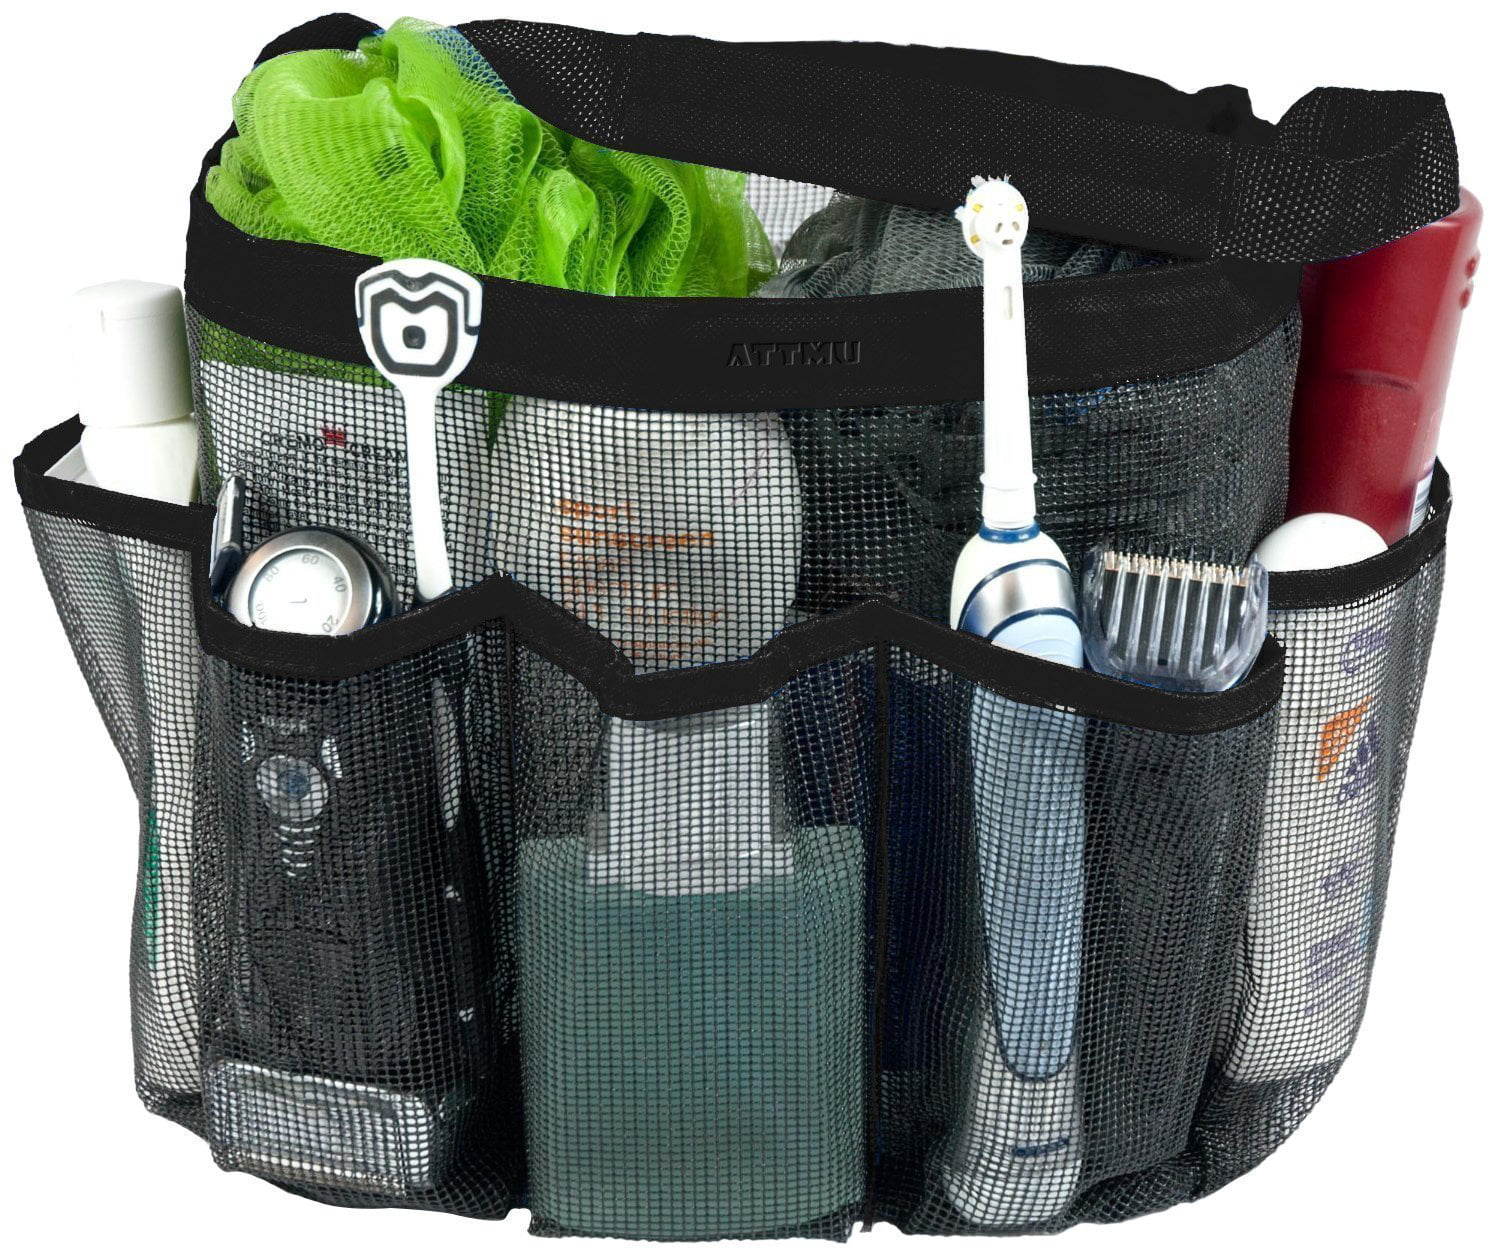 Mesh Shower Tote Caddy, FrontTech Shower Tote Bag with 8 Pockets, Quick Dry Bath... by